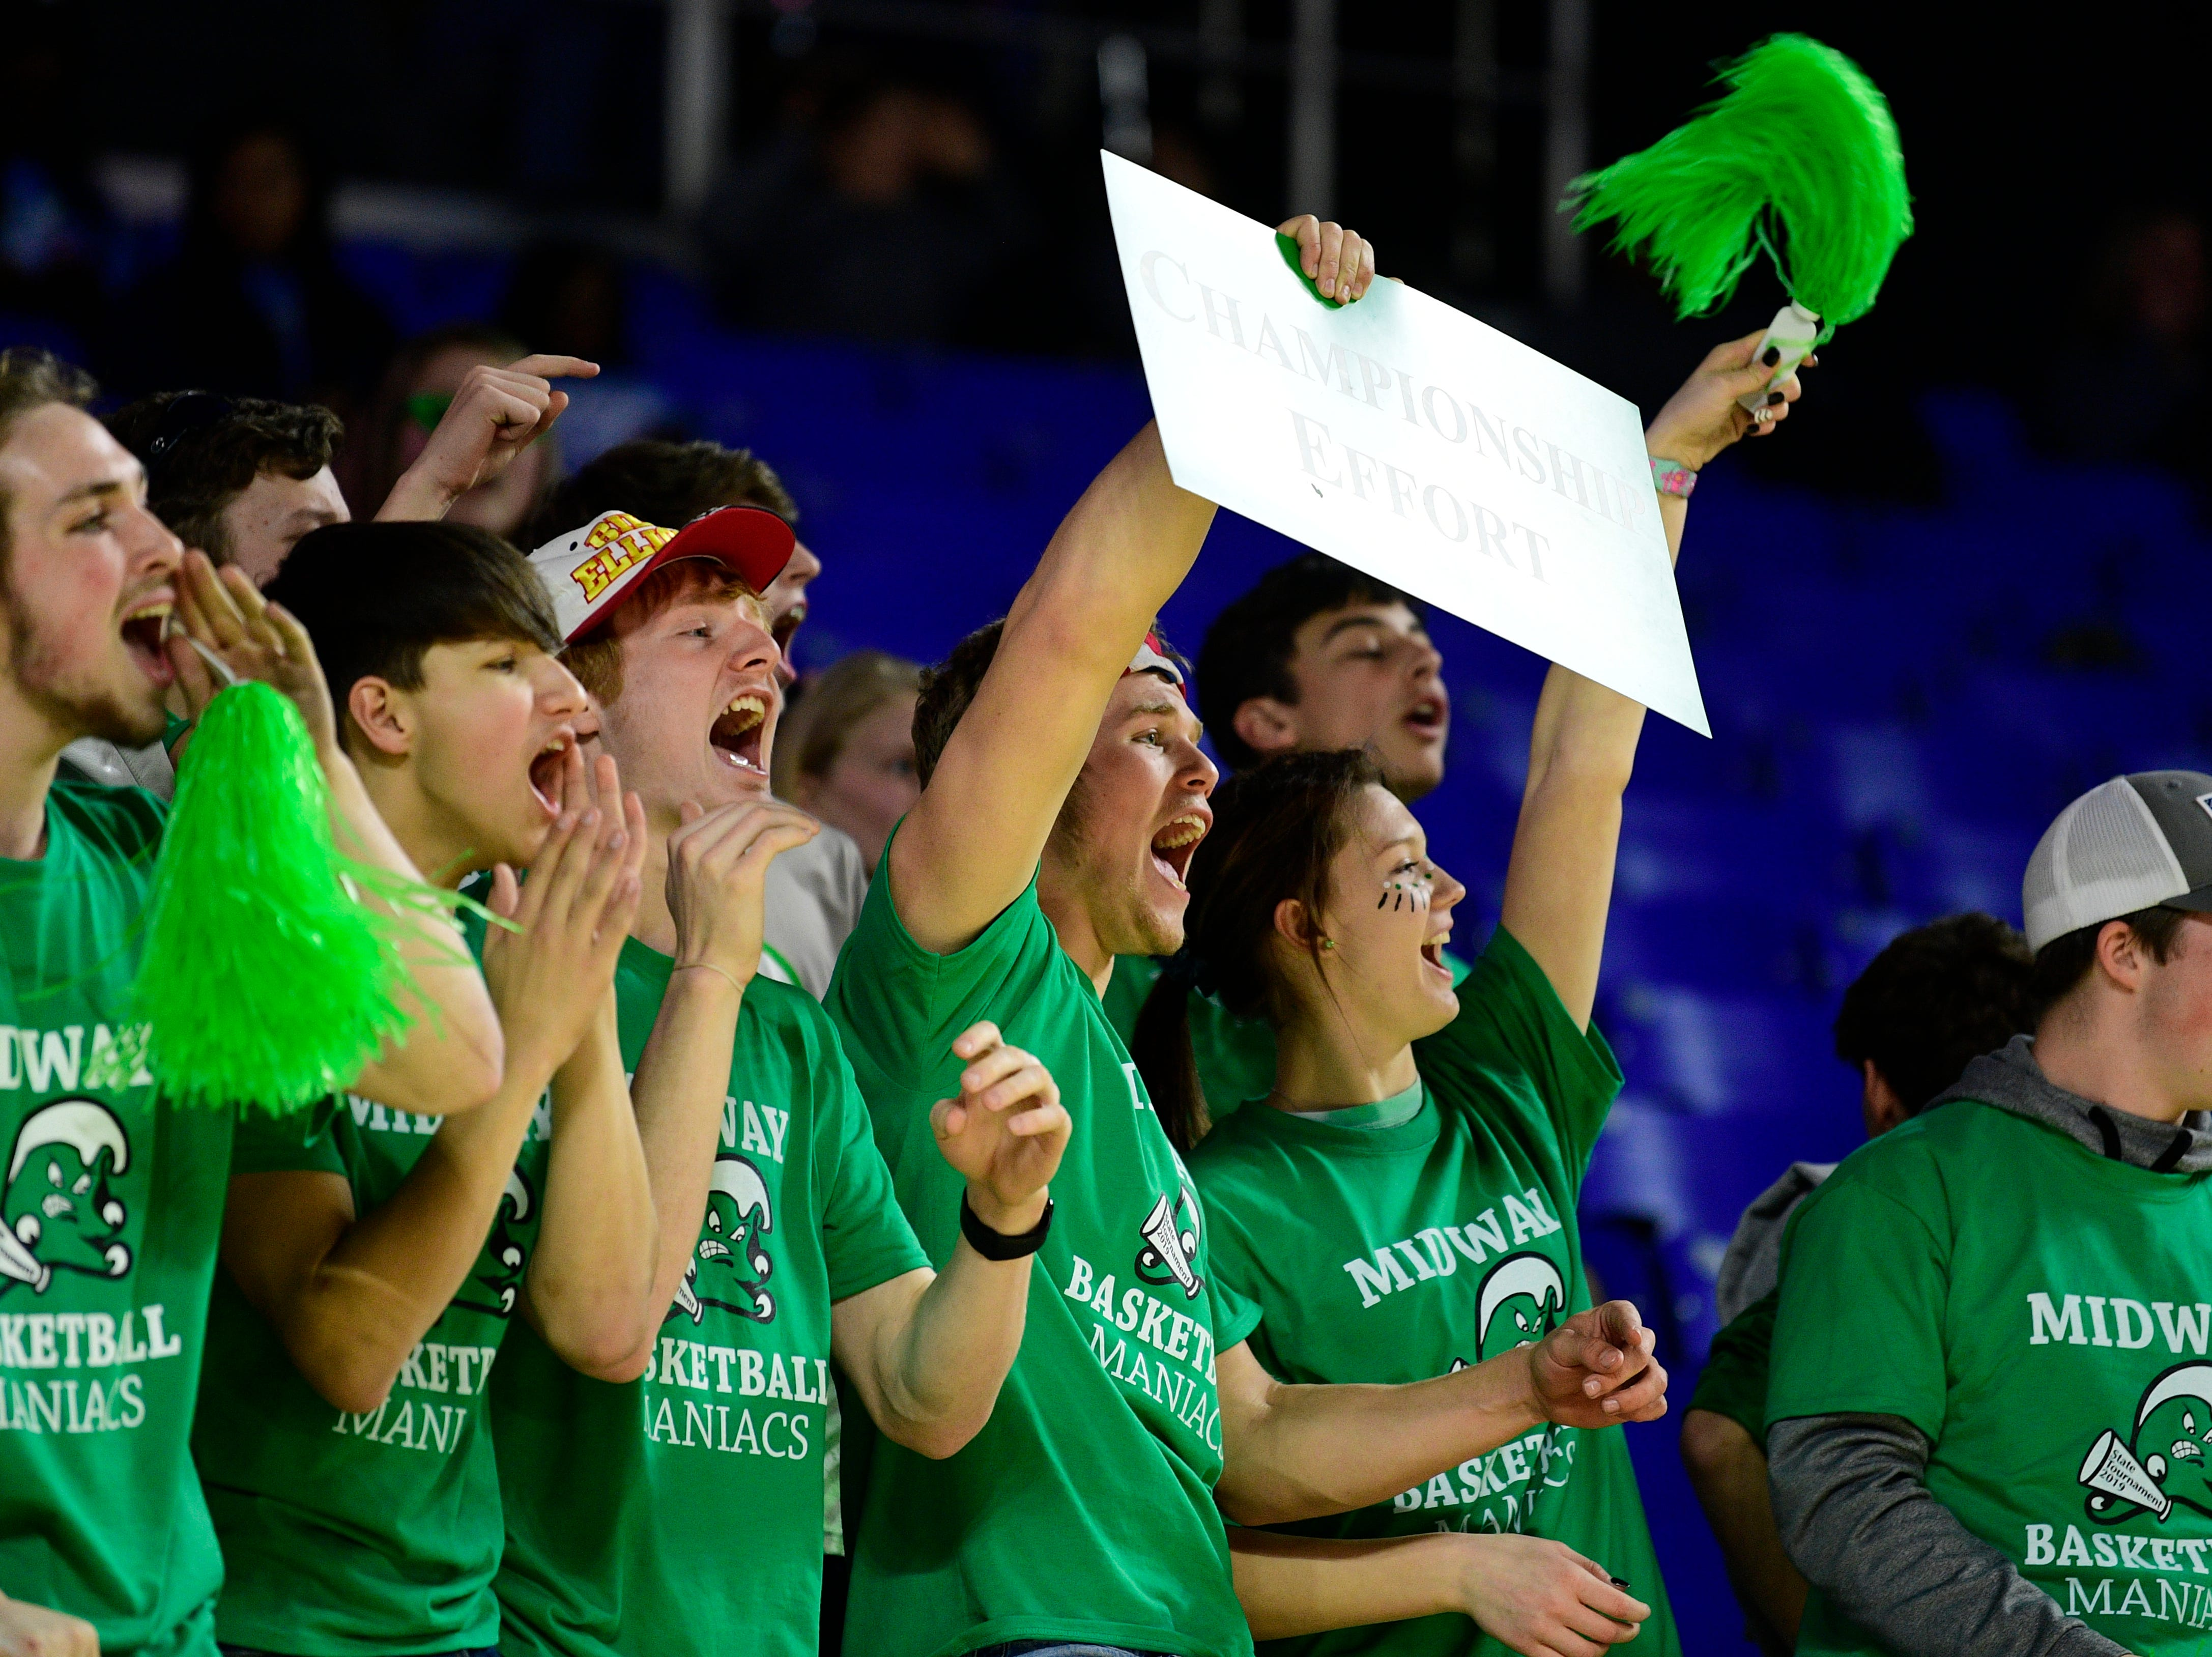 Midway students cheer during a game between Eagleville and Midway at the TSSAA girls state tournament at the Murphy Center in Murfreesboro, Tennessee on Thursday, March 7, 2019.